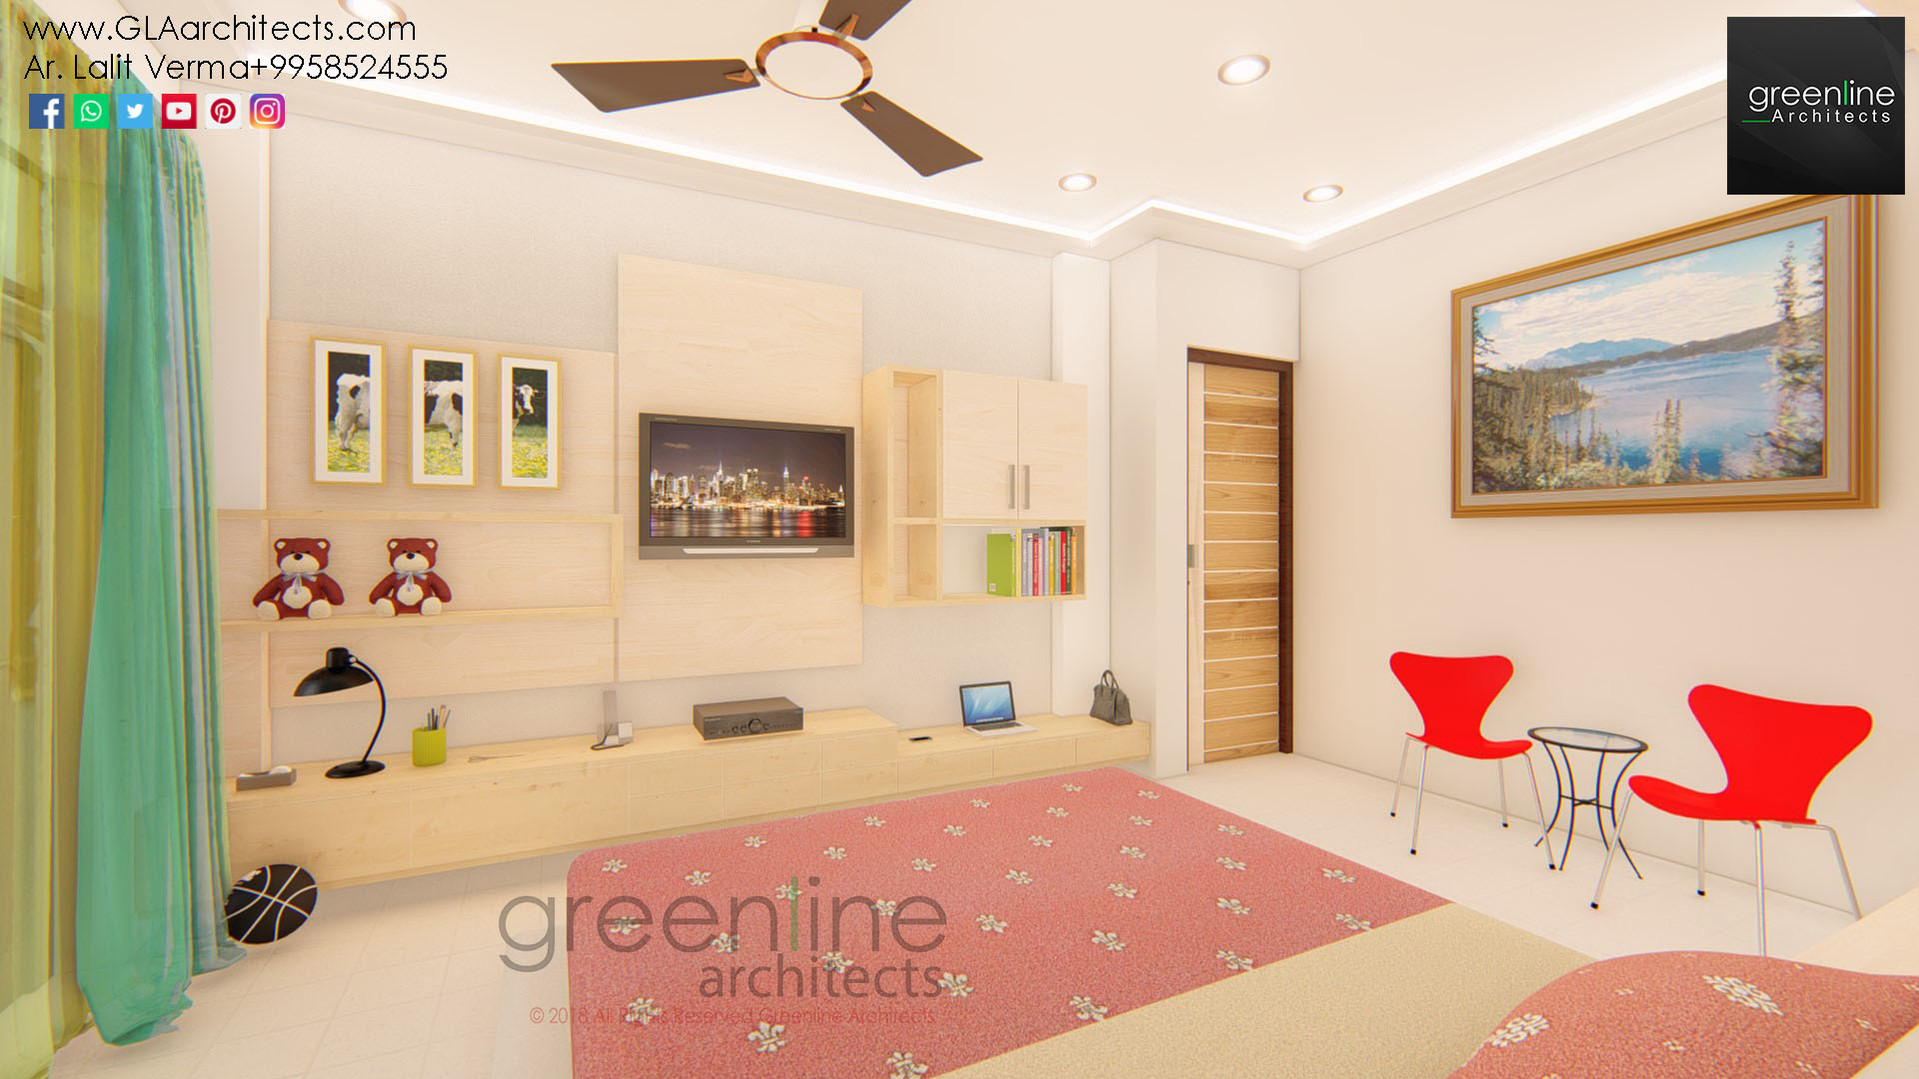 Home Interior Design in Gomti nagar Luck